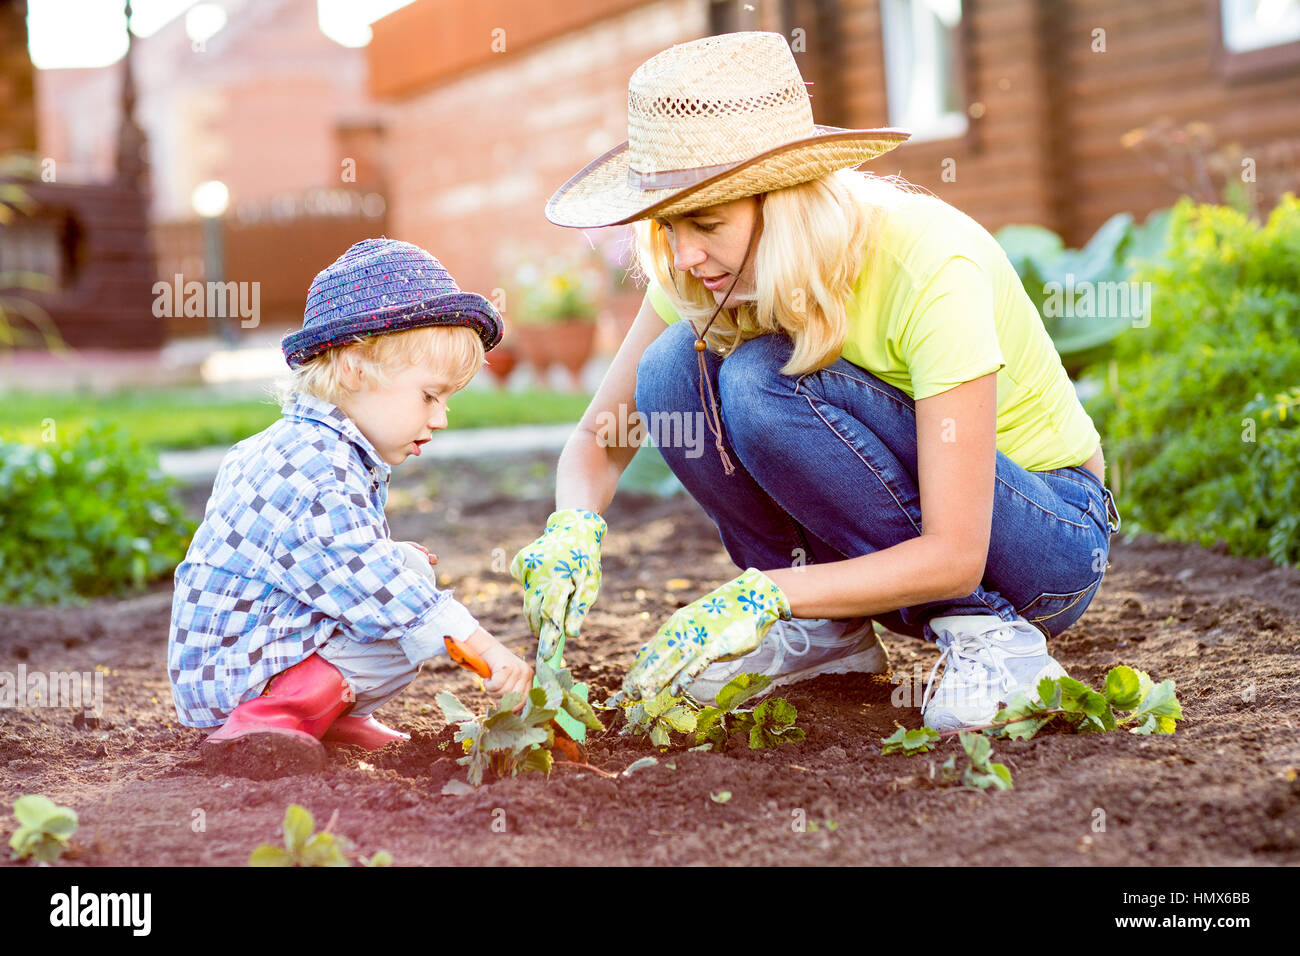 Child and mother planting strawberry seedling into fertile soil outside in garden Stock Photo